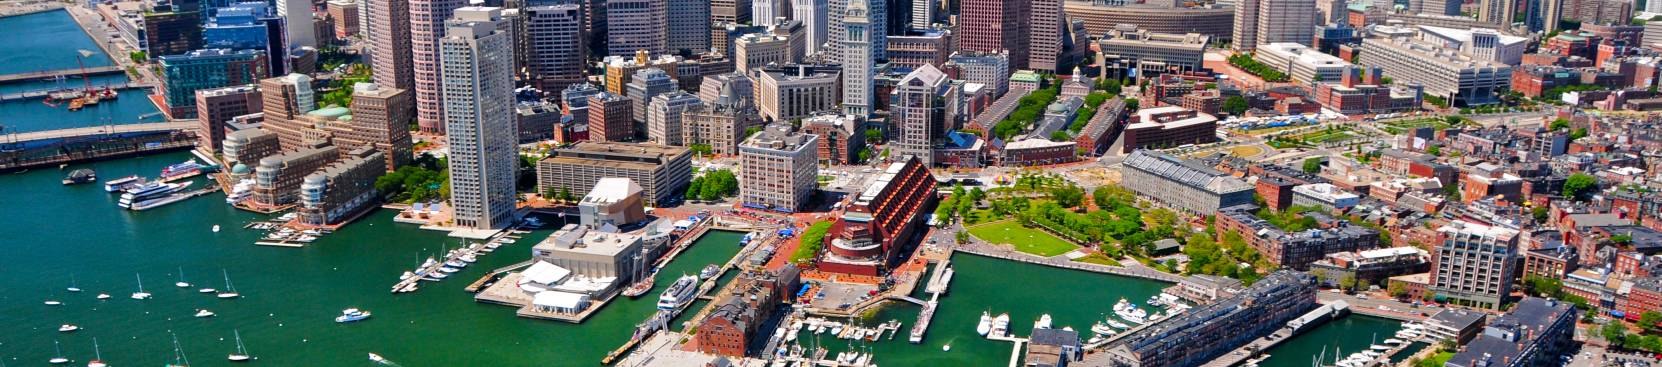 Top Things To Do In Boston - 10 things to see and do in boston